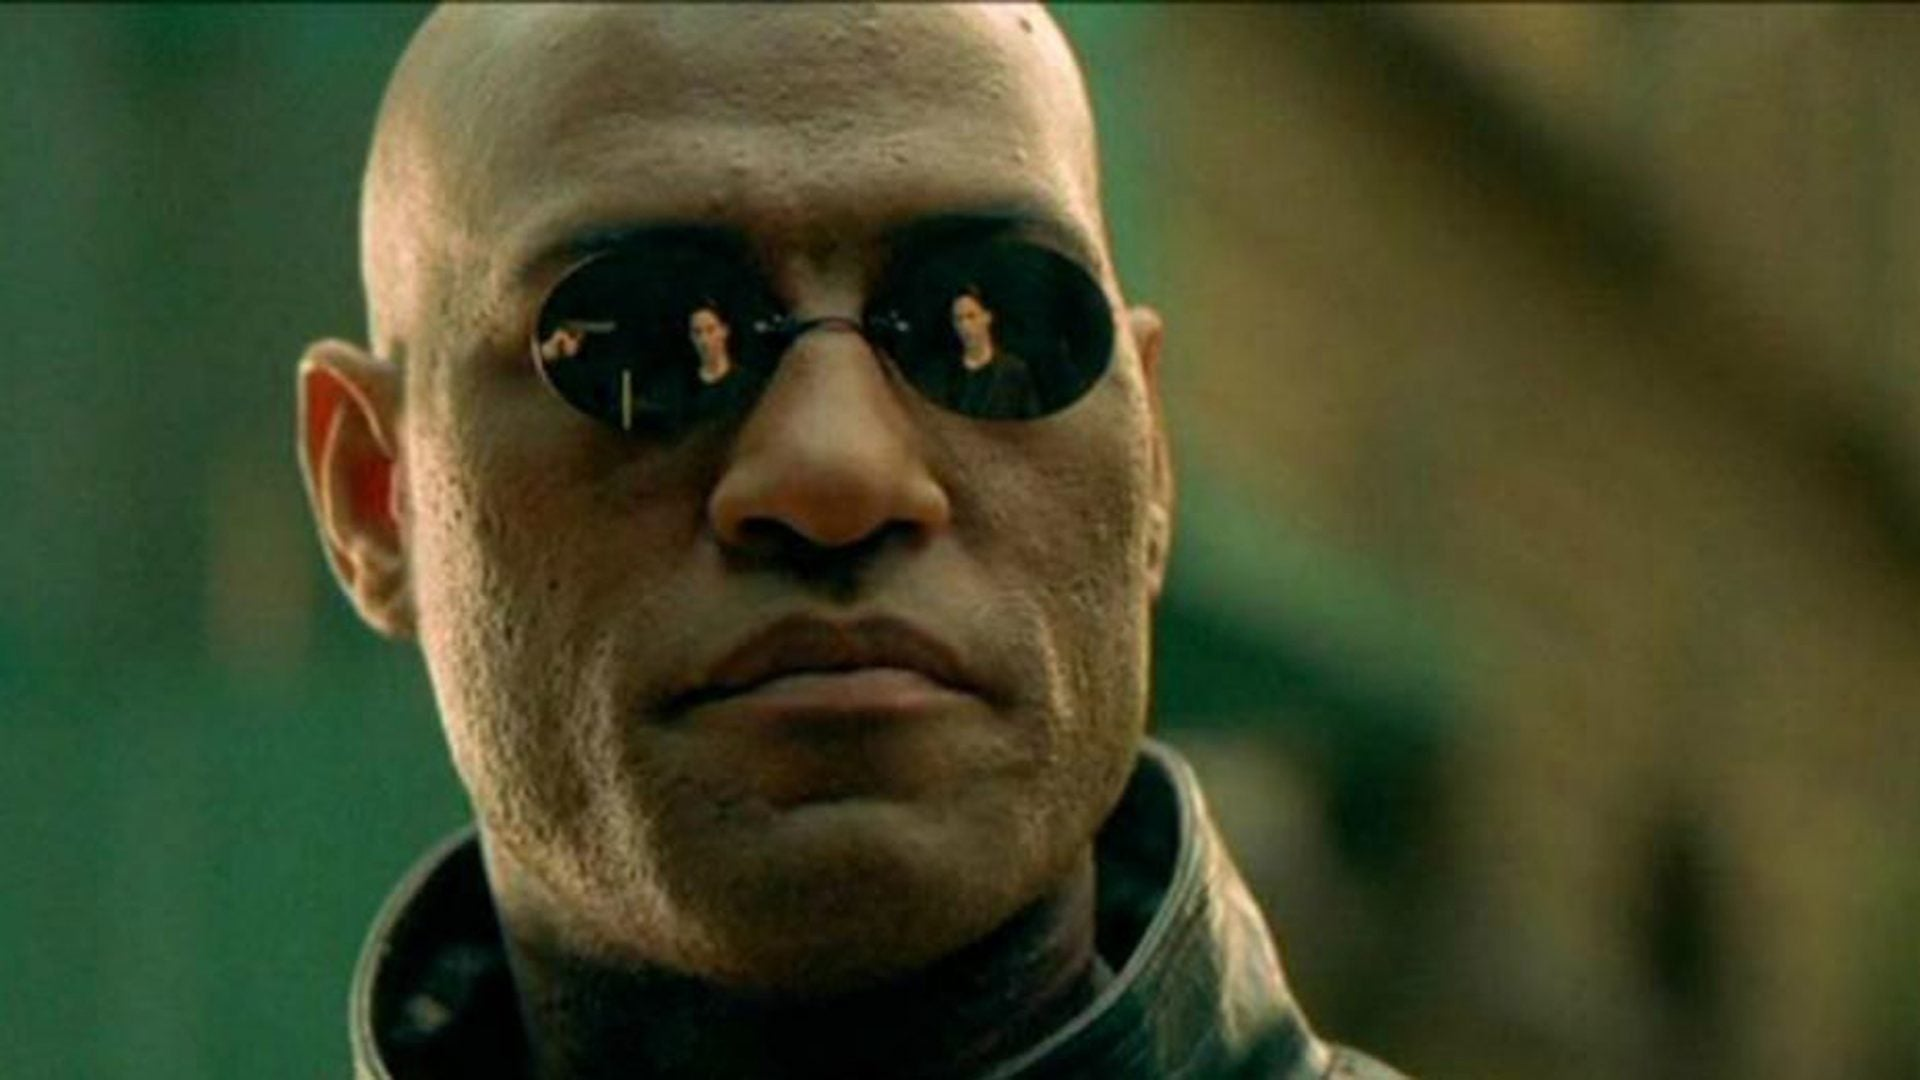 Laurence Fishburne 'Wasn't Invited' To Appear In 'Matrix 4'